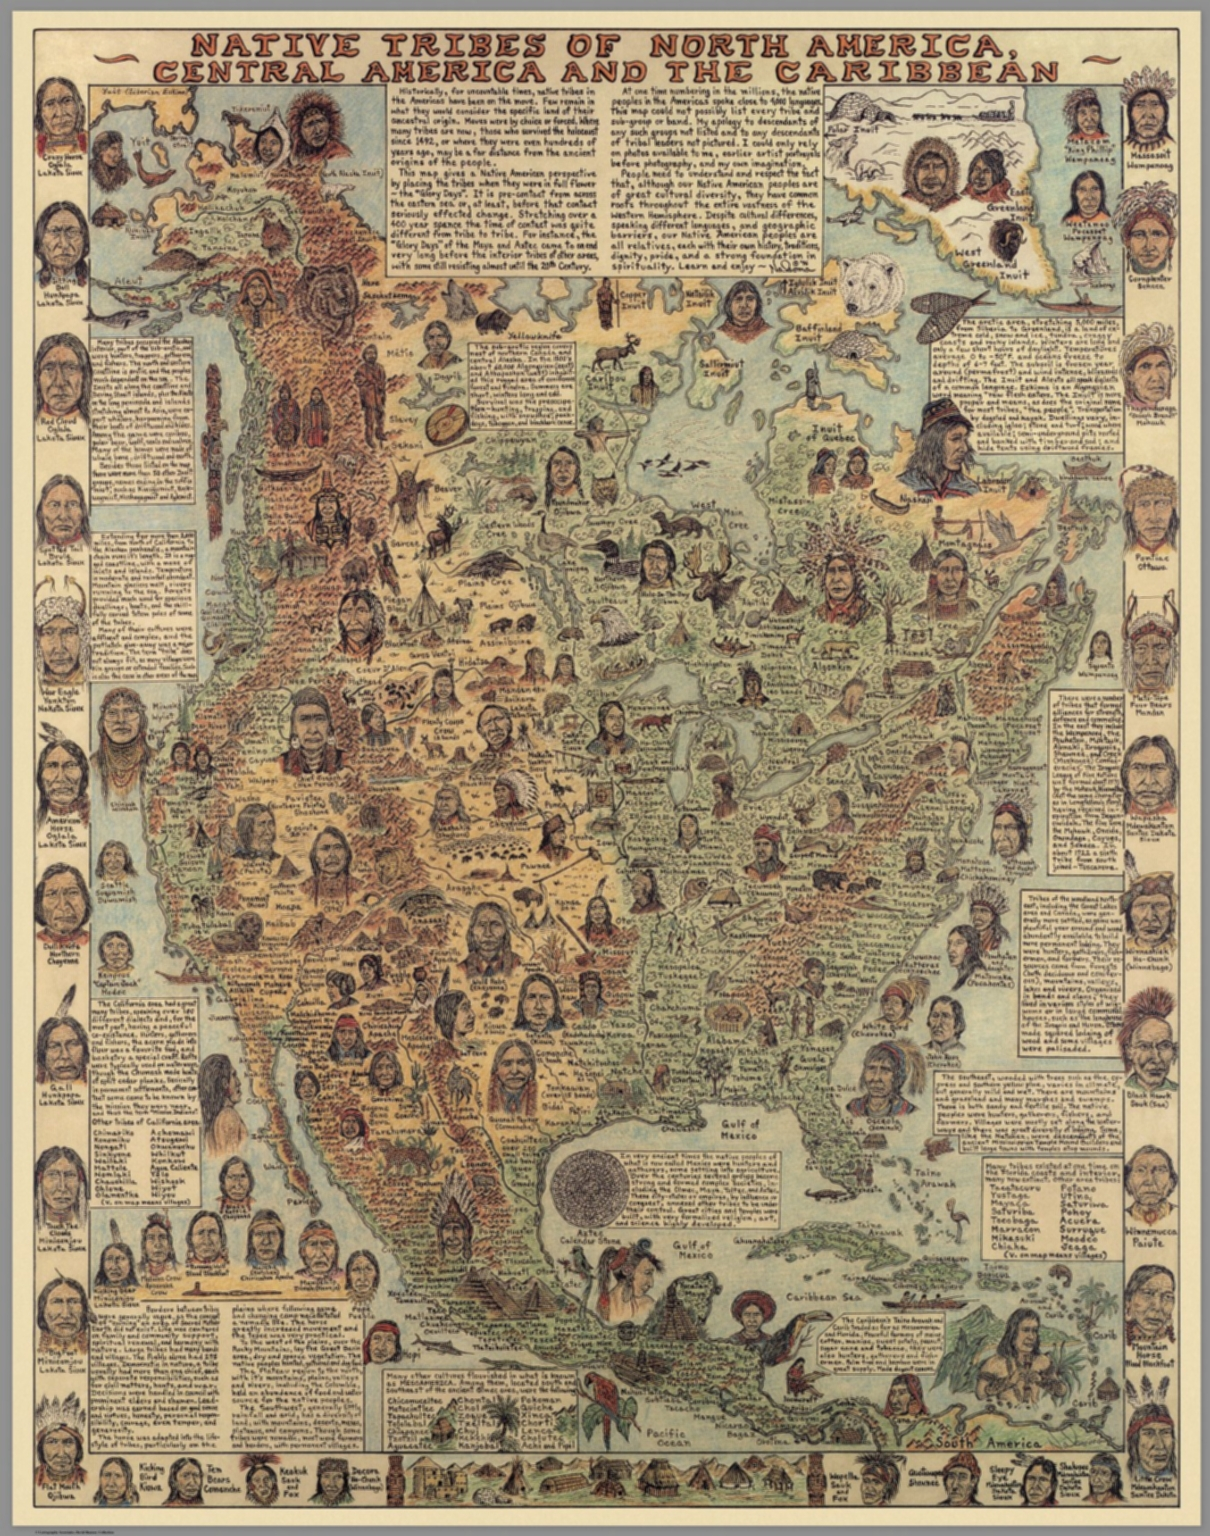 Native Tribes Of North America Central America And The Caribbean